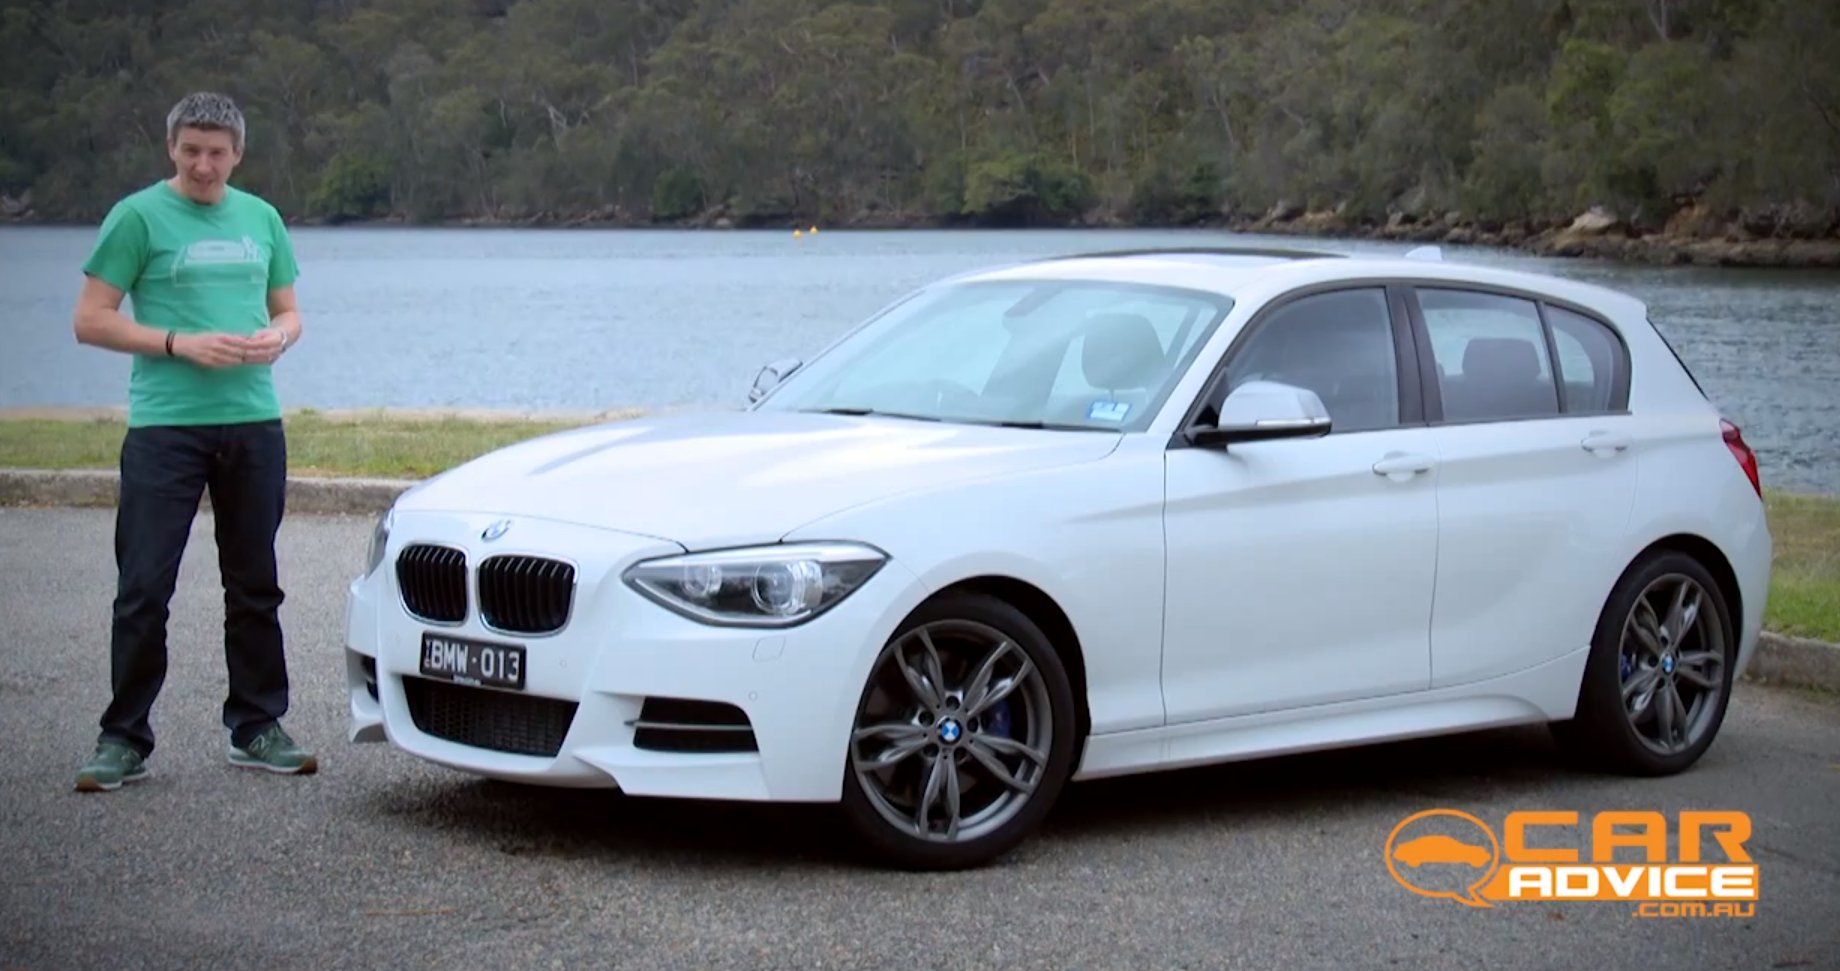 Bmw F20 M135i Review By Car Advice Video 59352 on bmw fast cars